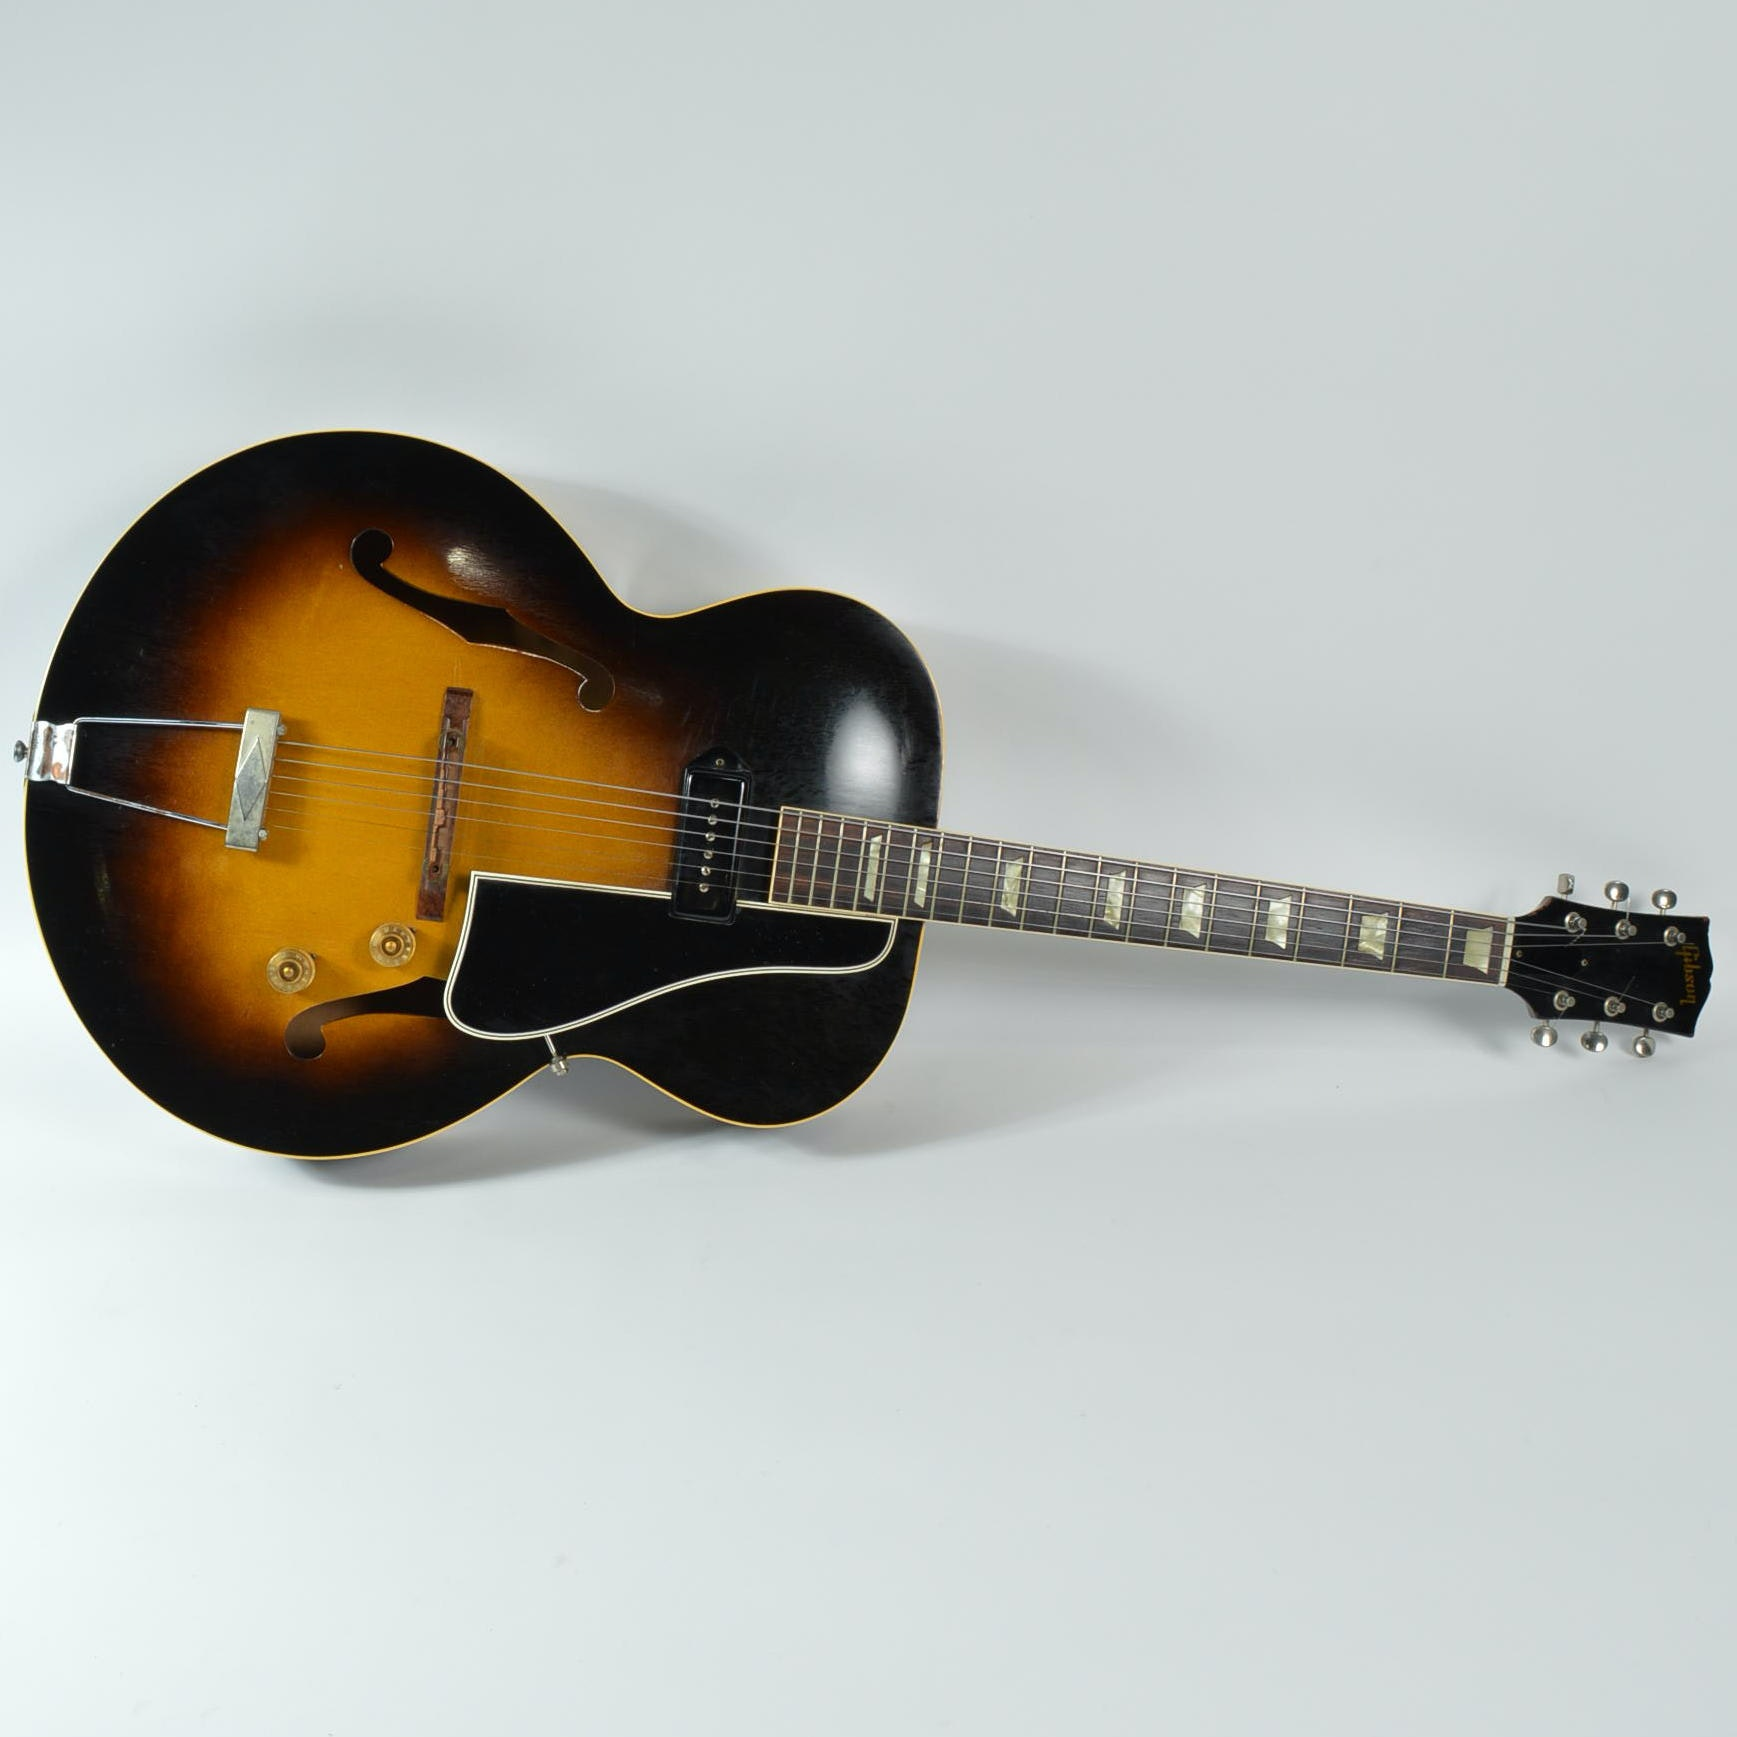 1950s Hollow Body Gibson ES-150 Guitar